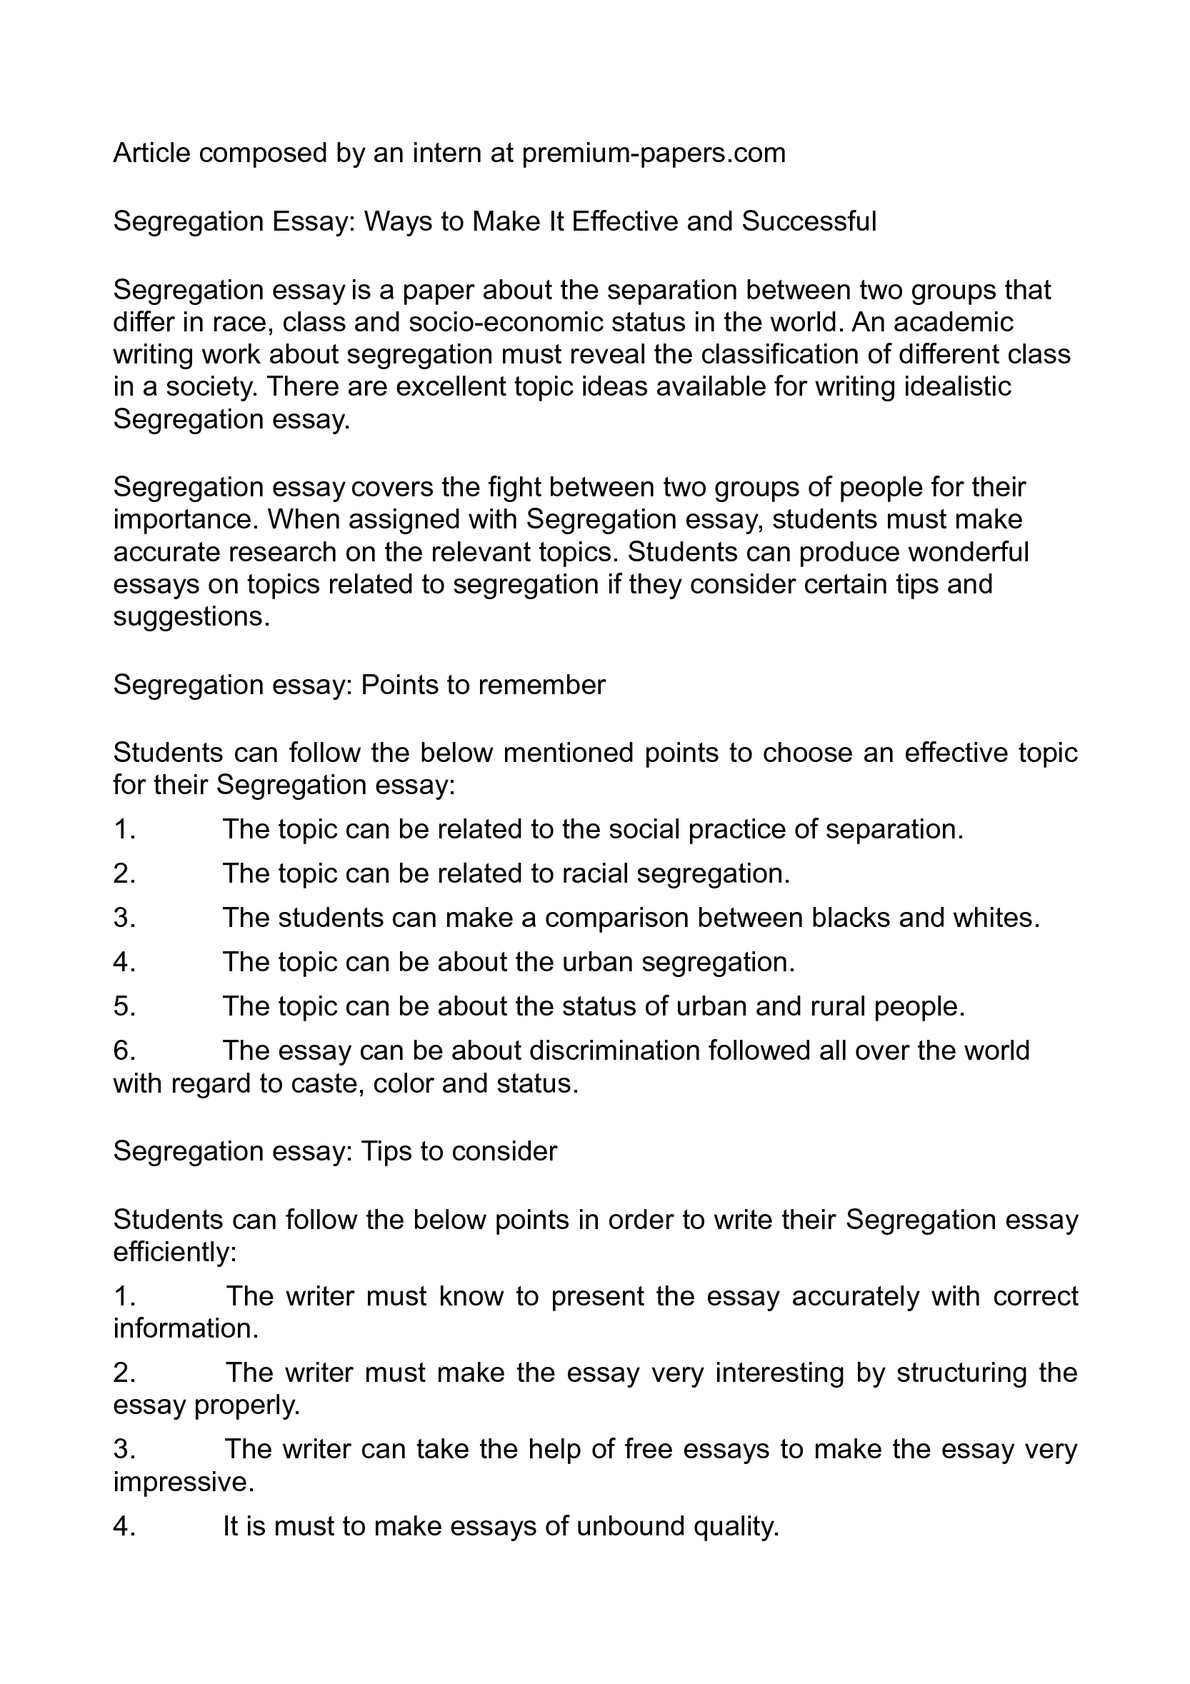 001 Essay Example Segregation Unusual Gender Segregated Schools Occupational On Importance Of Waste At Source Full